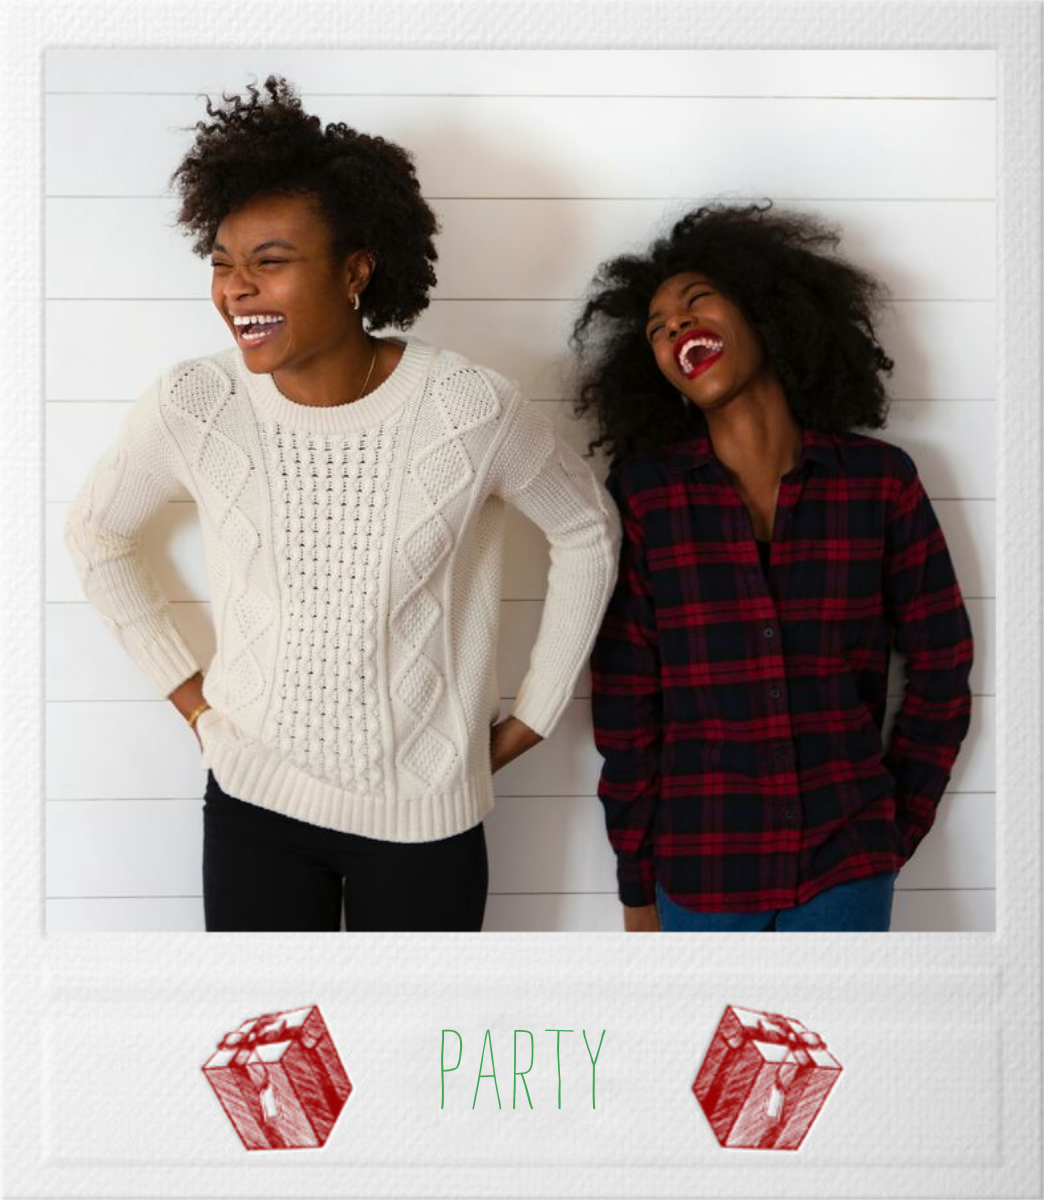 Snapshot - Gifts - Paperless Post - Christmas party